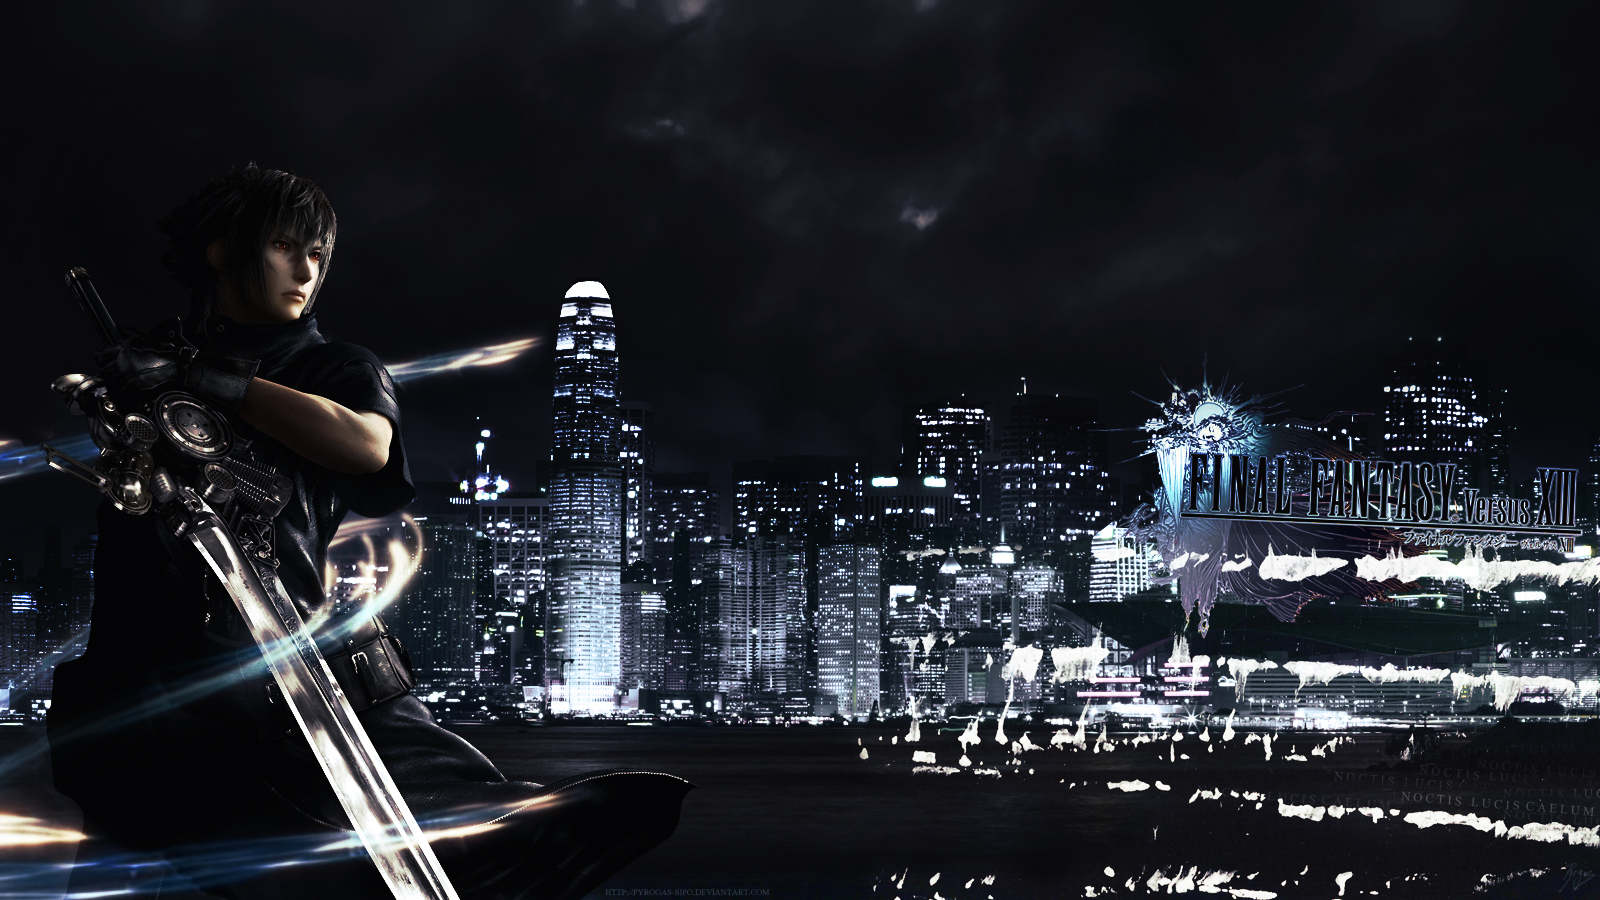 Wallpapers Video Games Final Fantasy - Miscellaneous Final Fantasy versus XIII